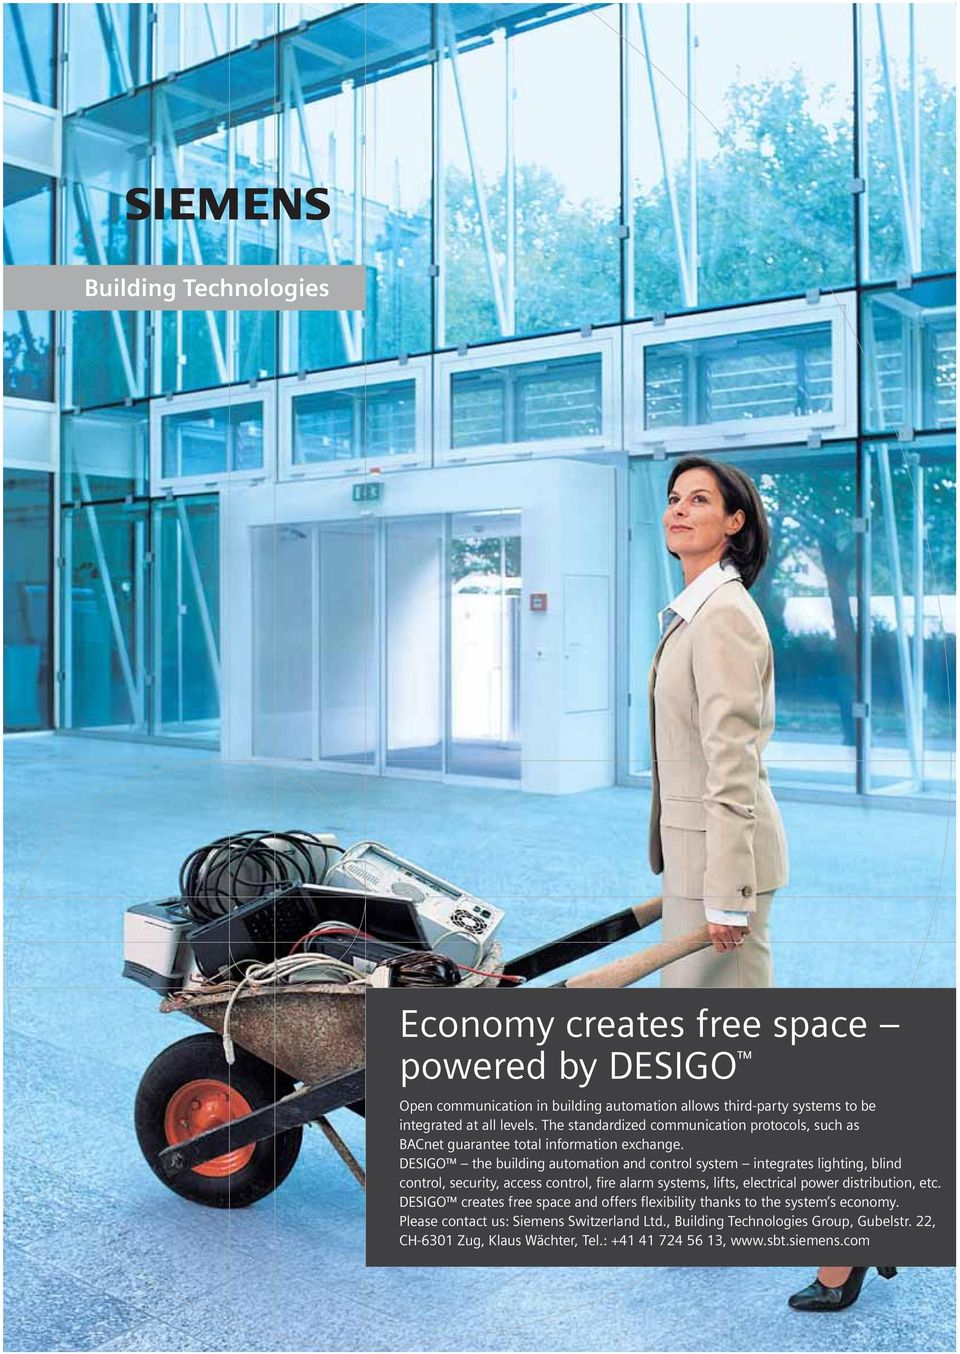 DESIGO the building automation and control system integrates lighting, blind control, security, access control, fire alarm systems, lifts, electrical power